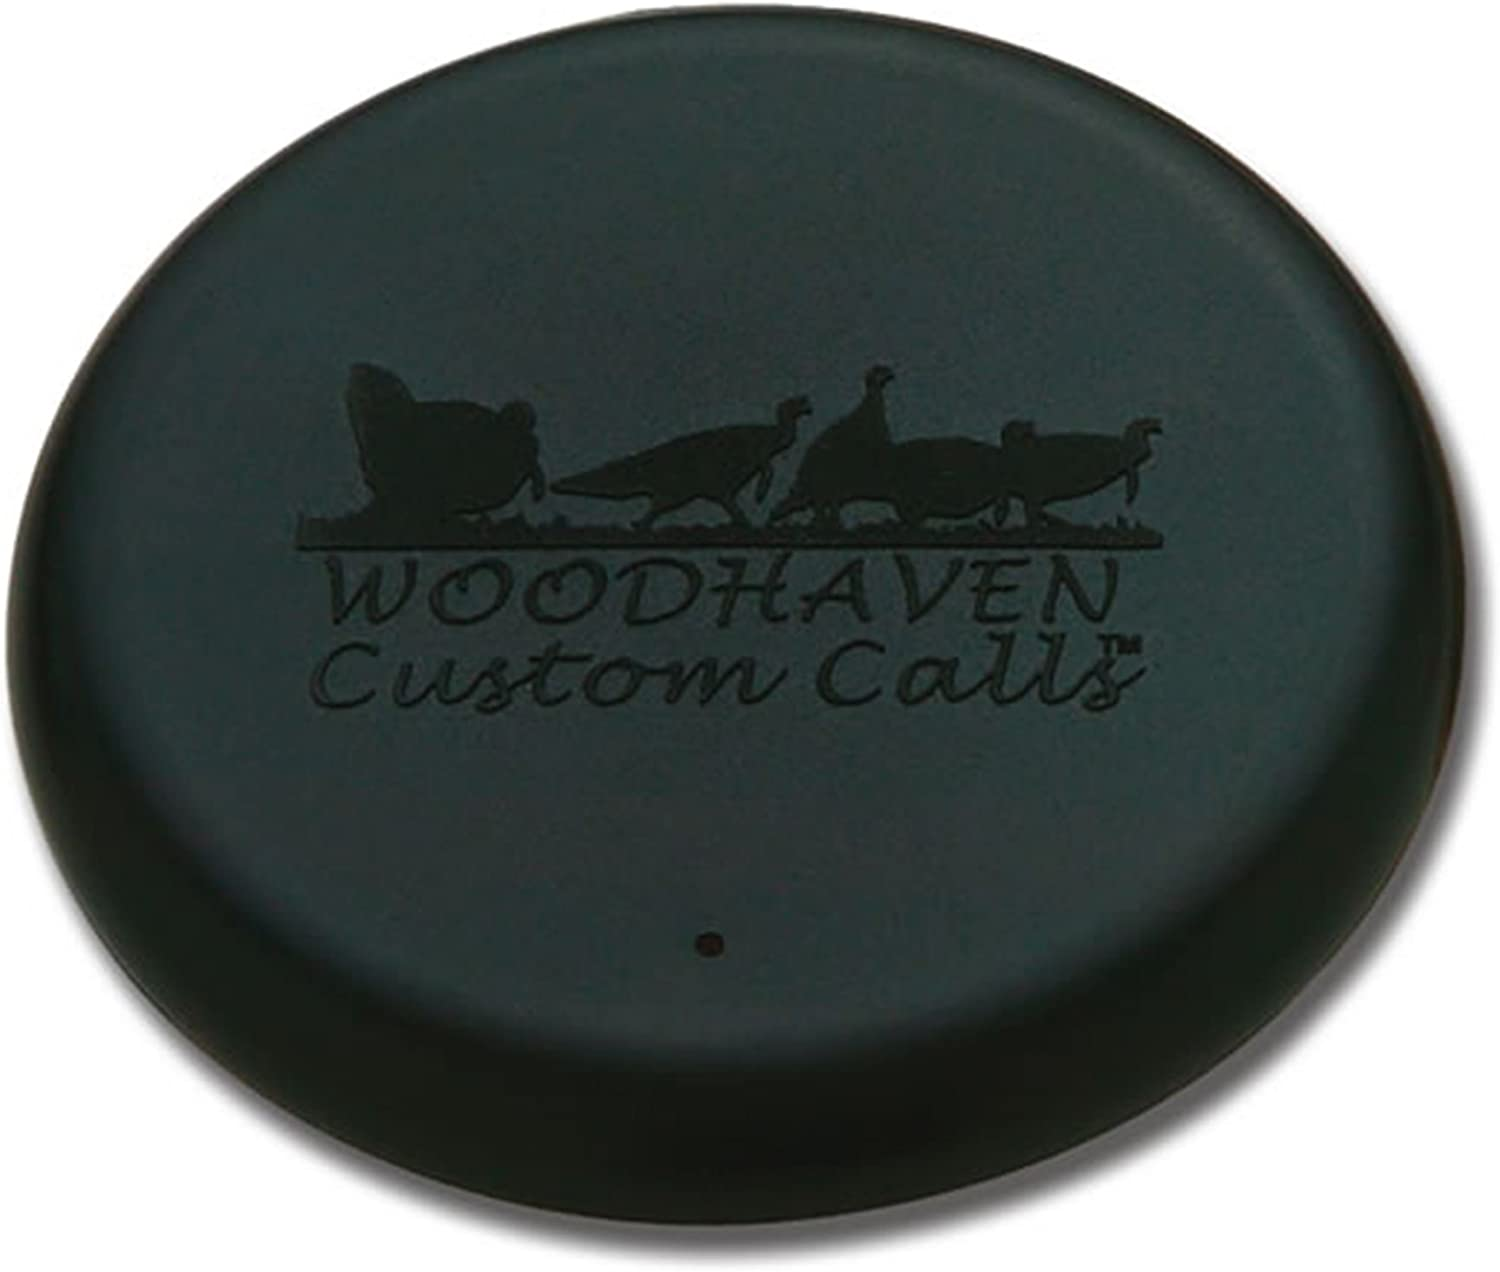 WOODHAVEN CALLS Woodhaven Custom Calls Saver f Albuquerque Mall Lid Outstanding Black Surface